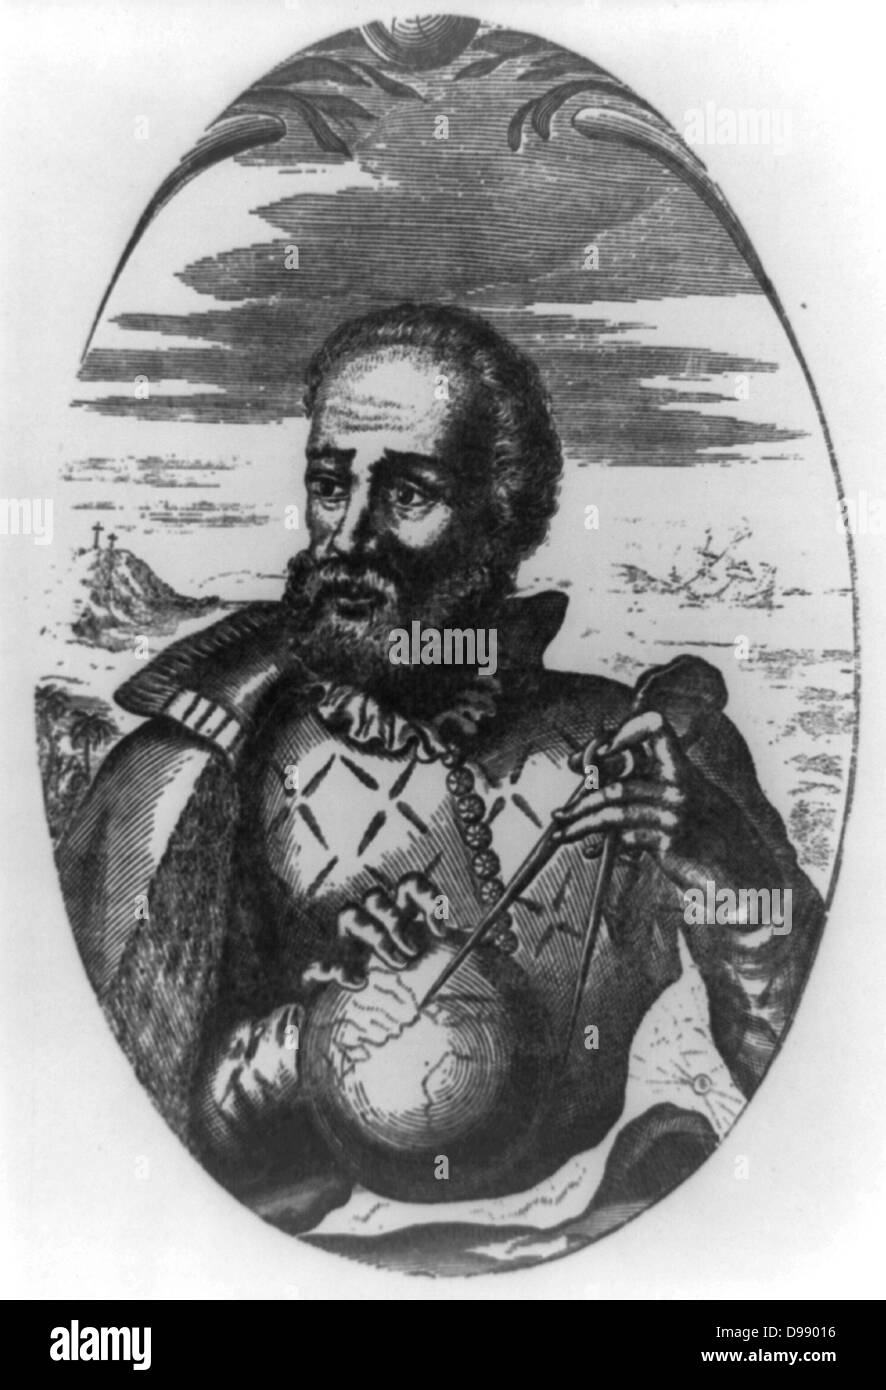 Fernando Magellan, half-length portrait, facing left; holding globe and compass - Stock Image